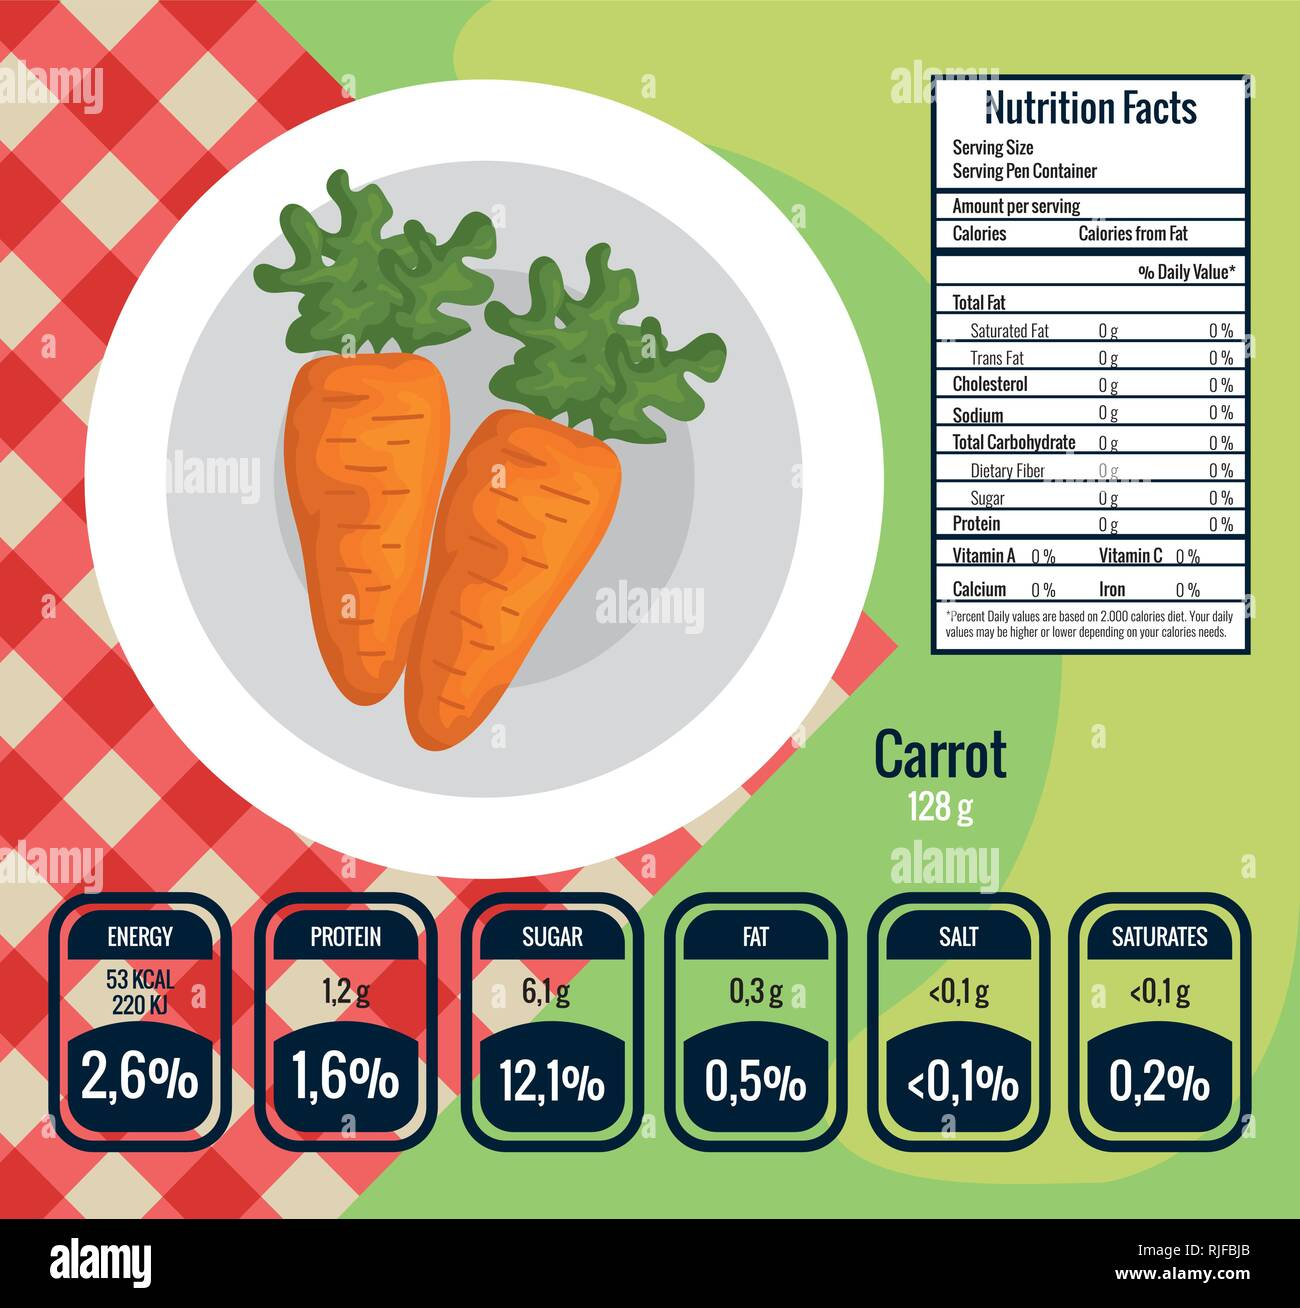 Fresh Carrots With Nutrition Facts Stock Vector Image Art Alamy